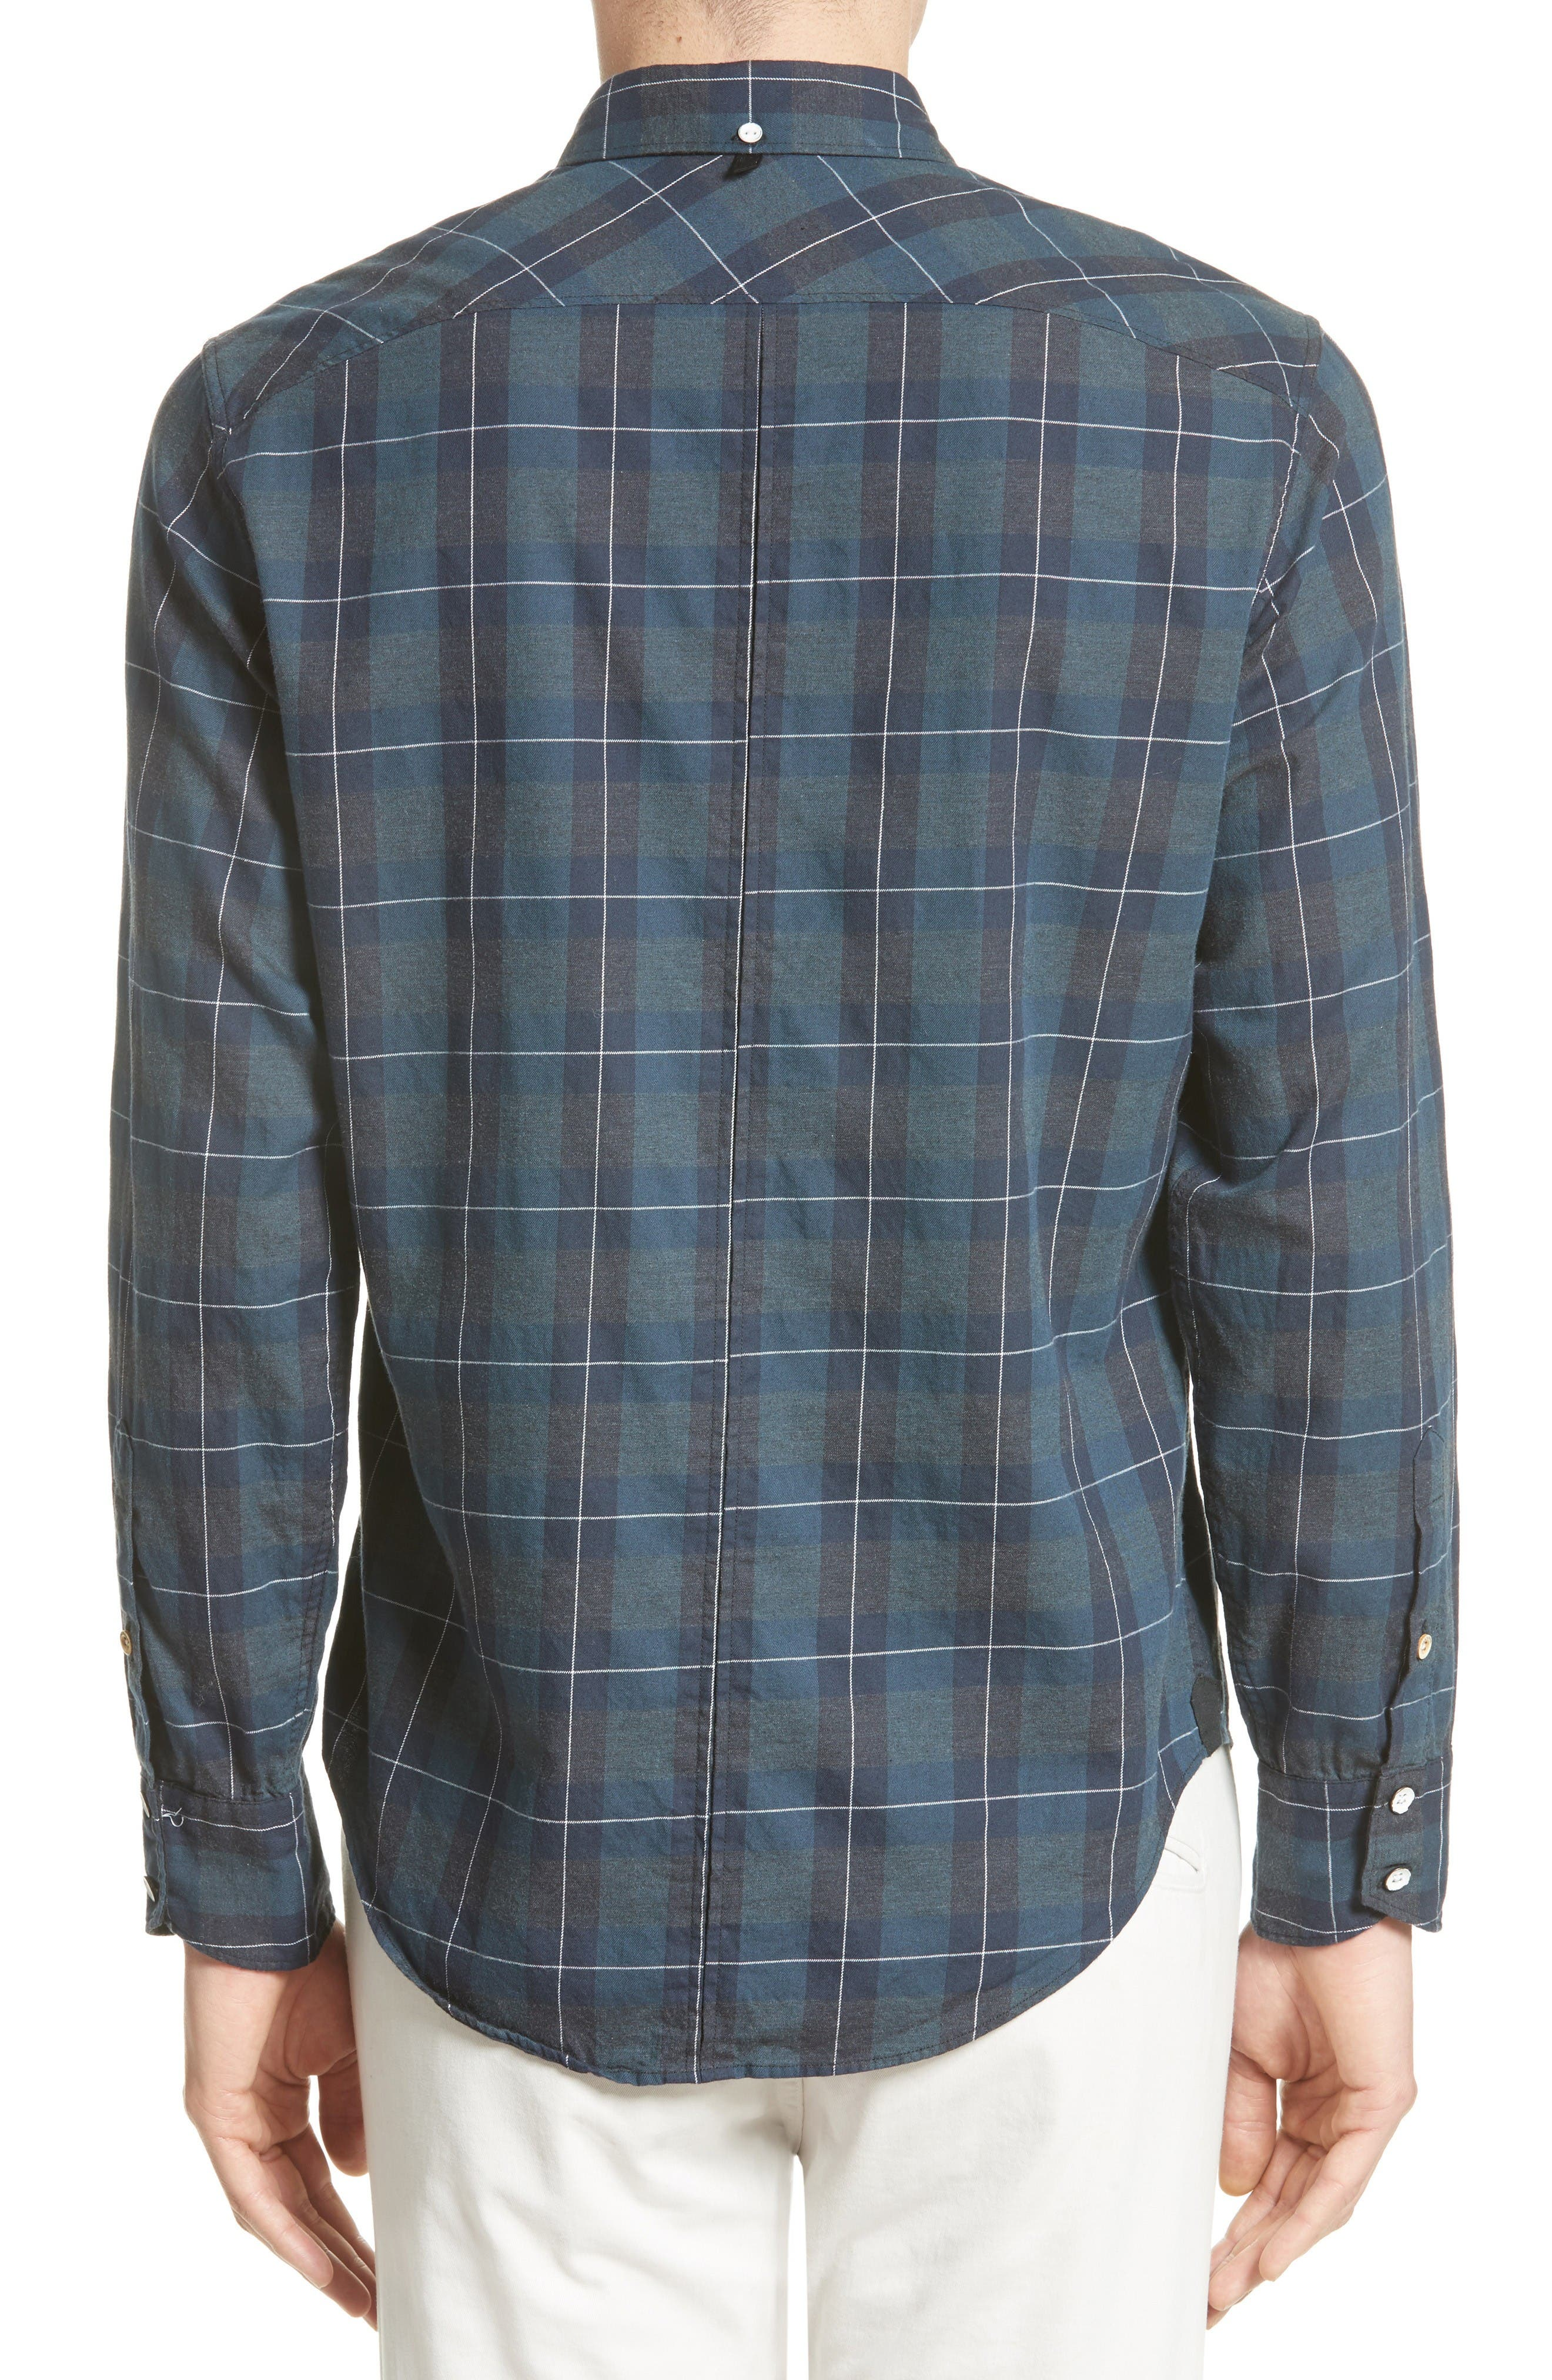 Tomlin Plaid Sport Shirt,                             Alternate thumbnail 2, color,                             Navy Multi